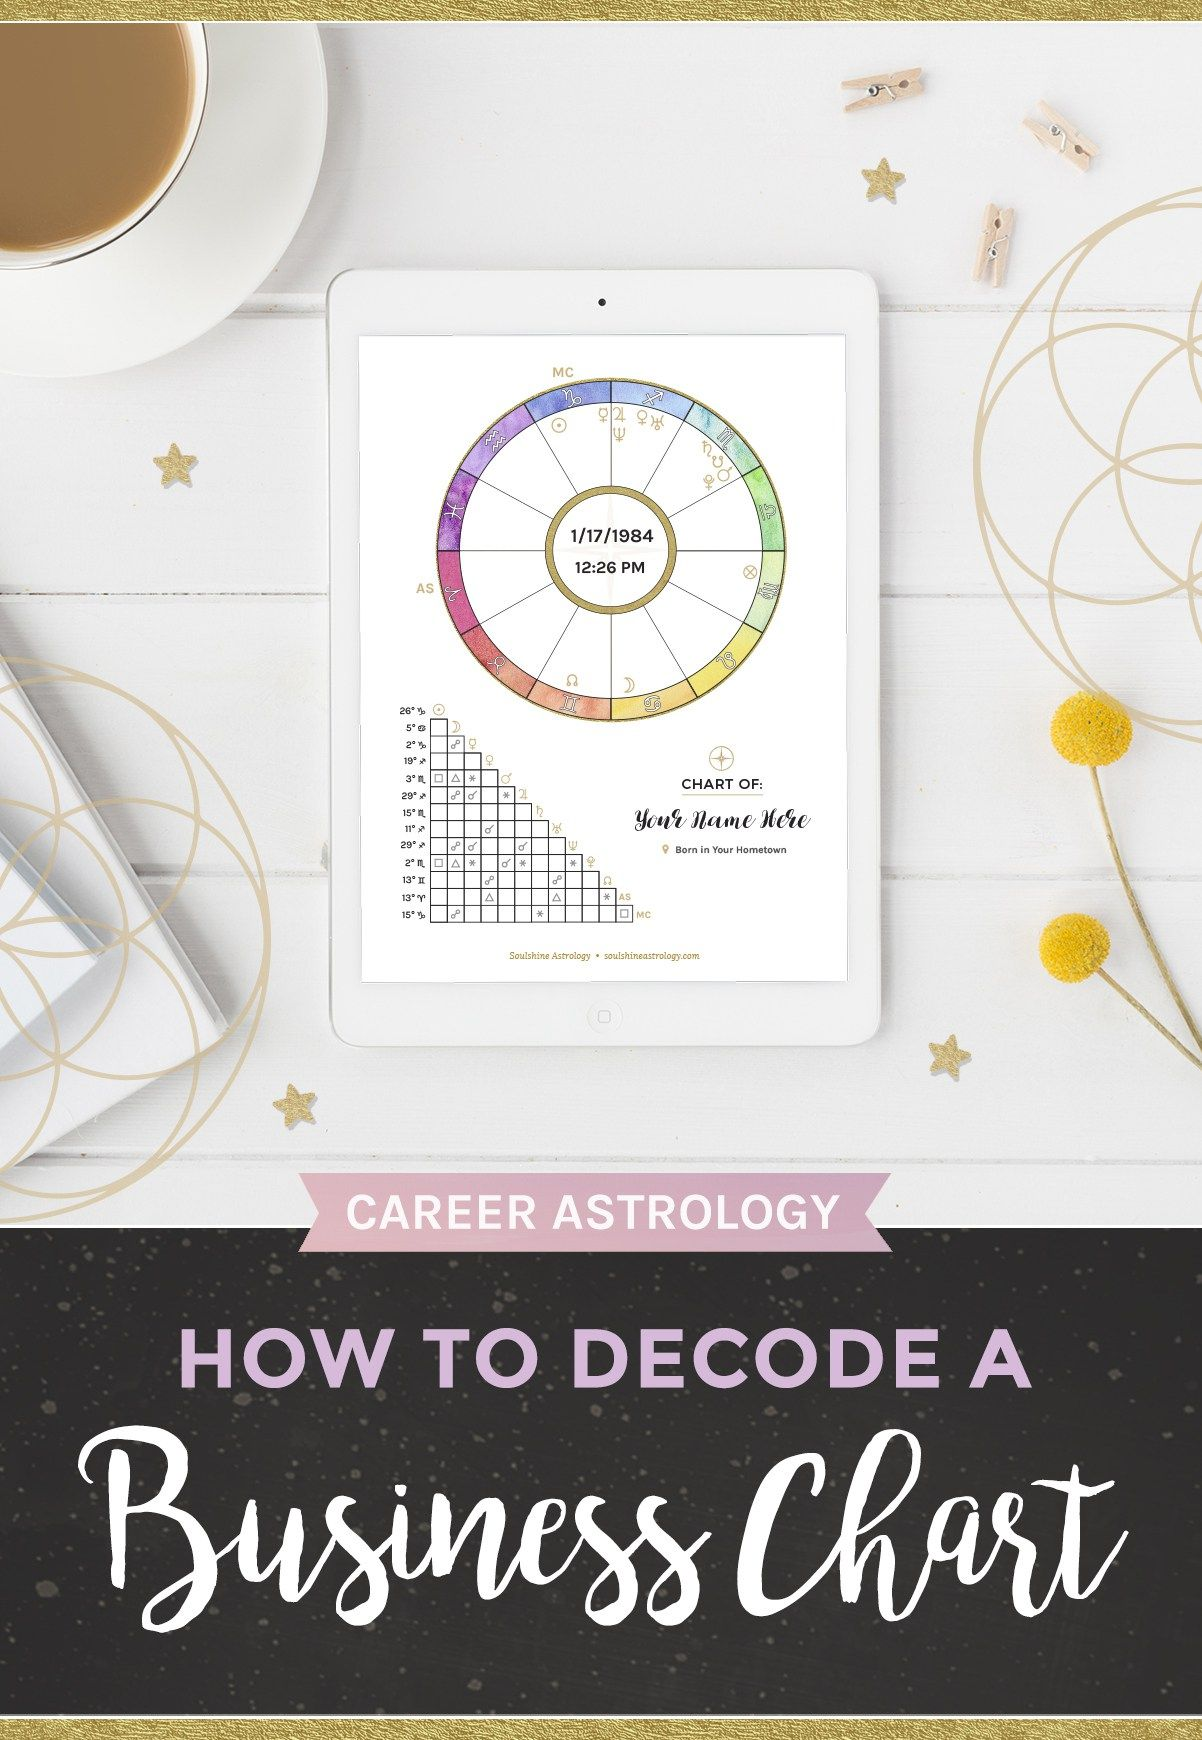 Career Astrology Your Business Has a Birth Chart   Career ...